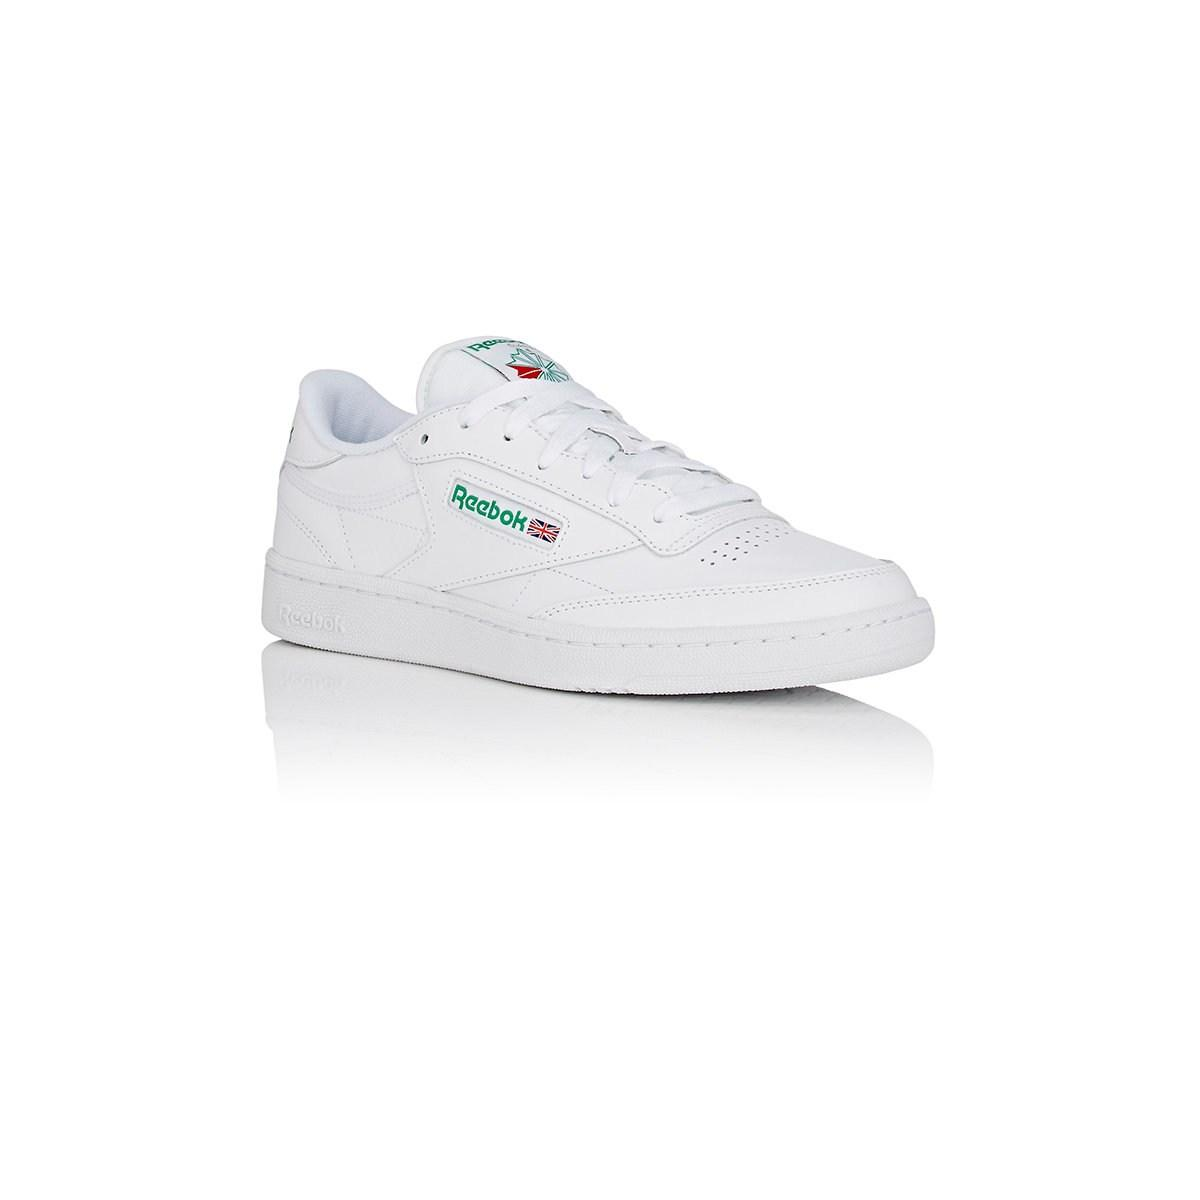 aba83fc18be8 Reebok - White Club C 85 Leather Low-top Sneakers for Men - Lyst. View  fullscreen